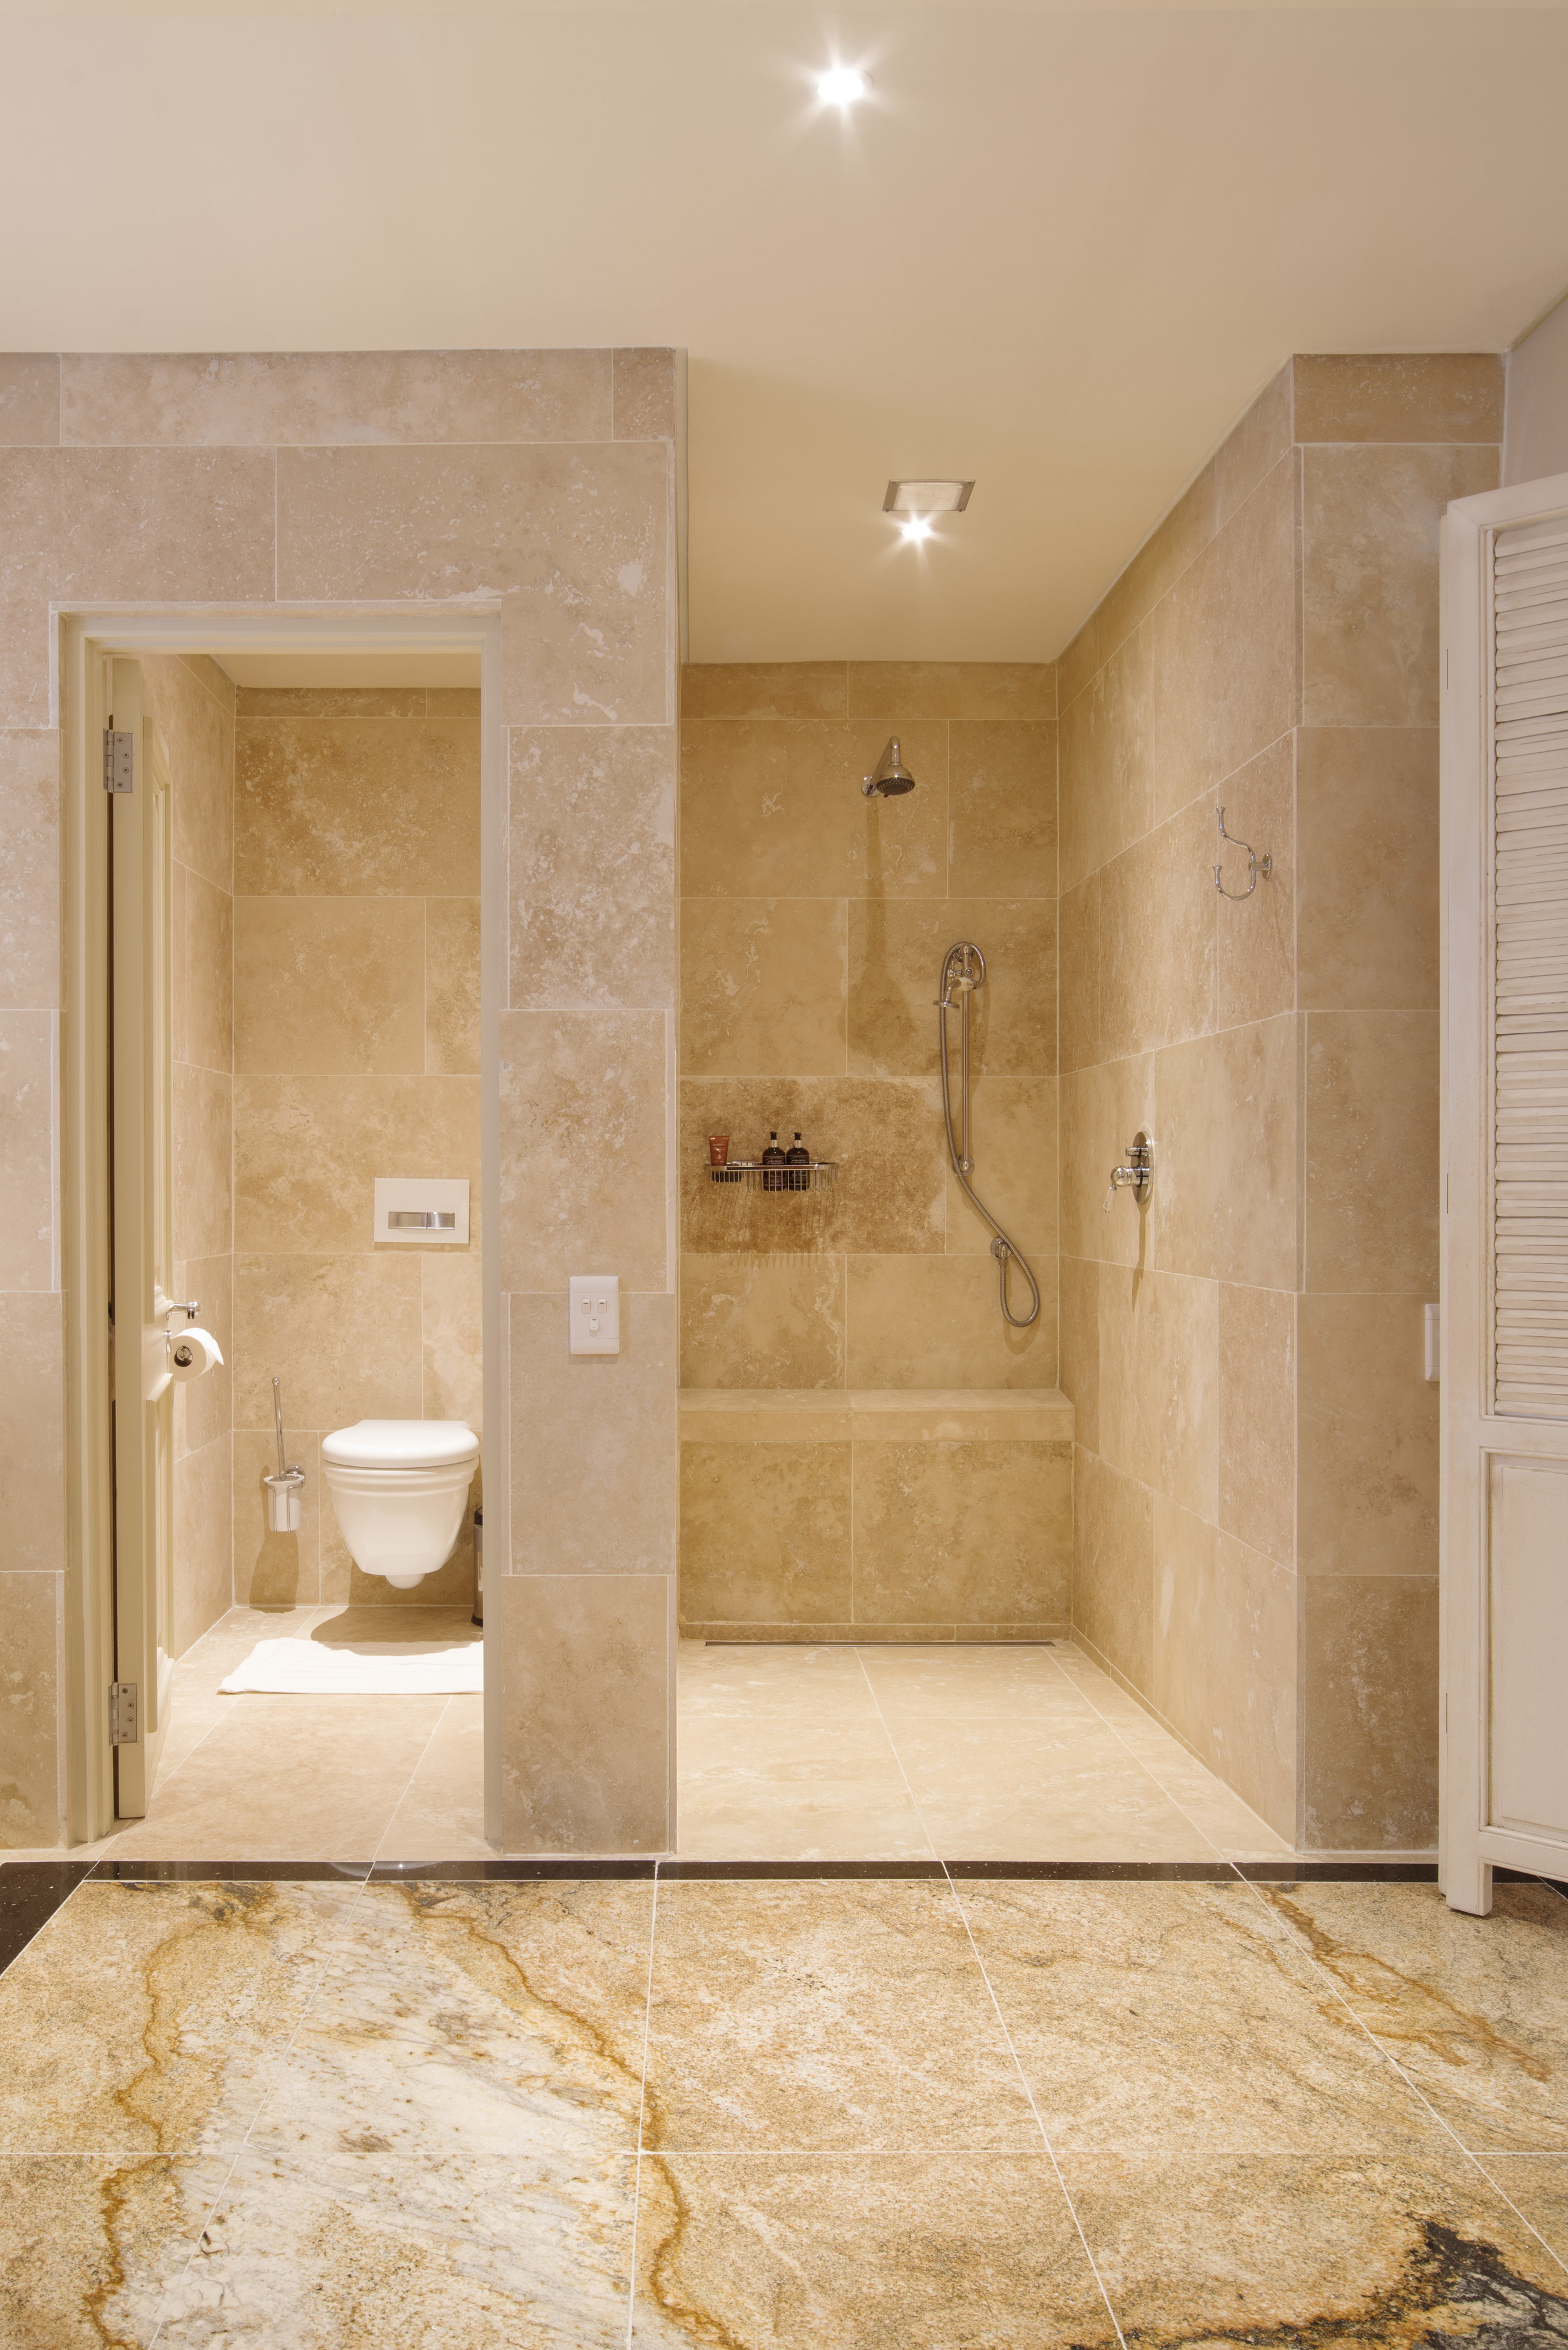 The walk-in shower and separate WC in the luxurious marble bathroom in the Emporer Suite at 21 Nettleton